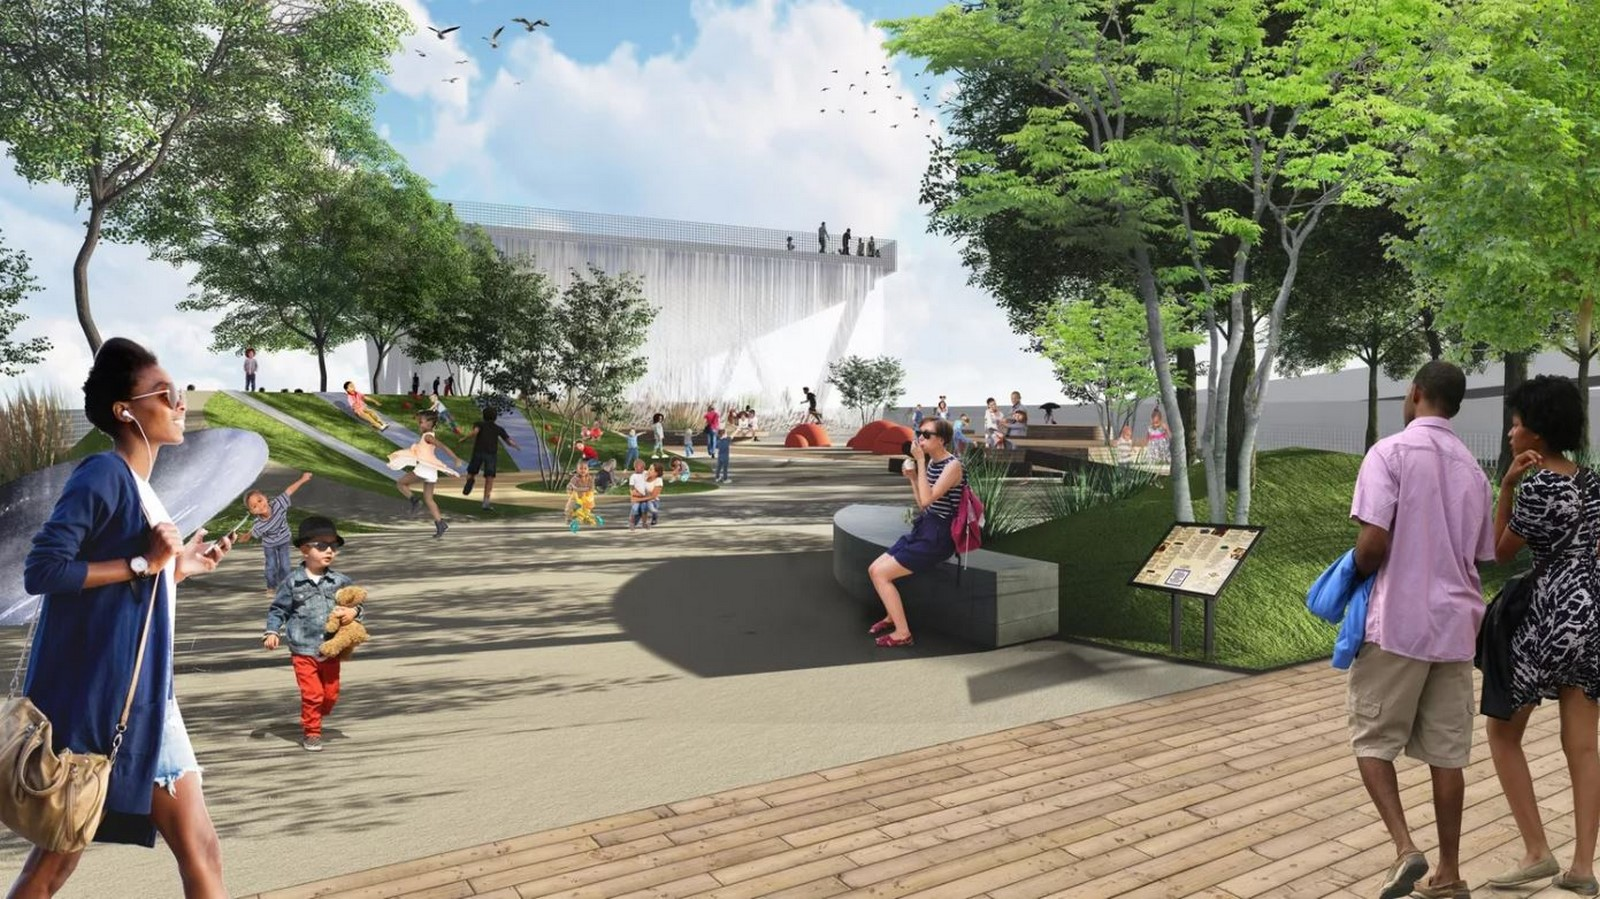 11th Street Bridge Park by Rem Koolhaas: Uniting the divided city - Sheet9